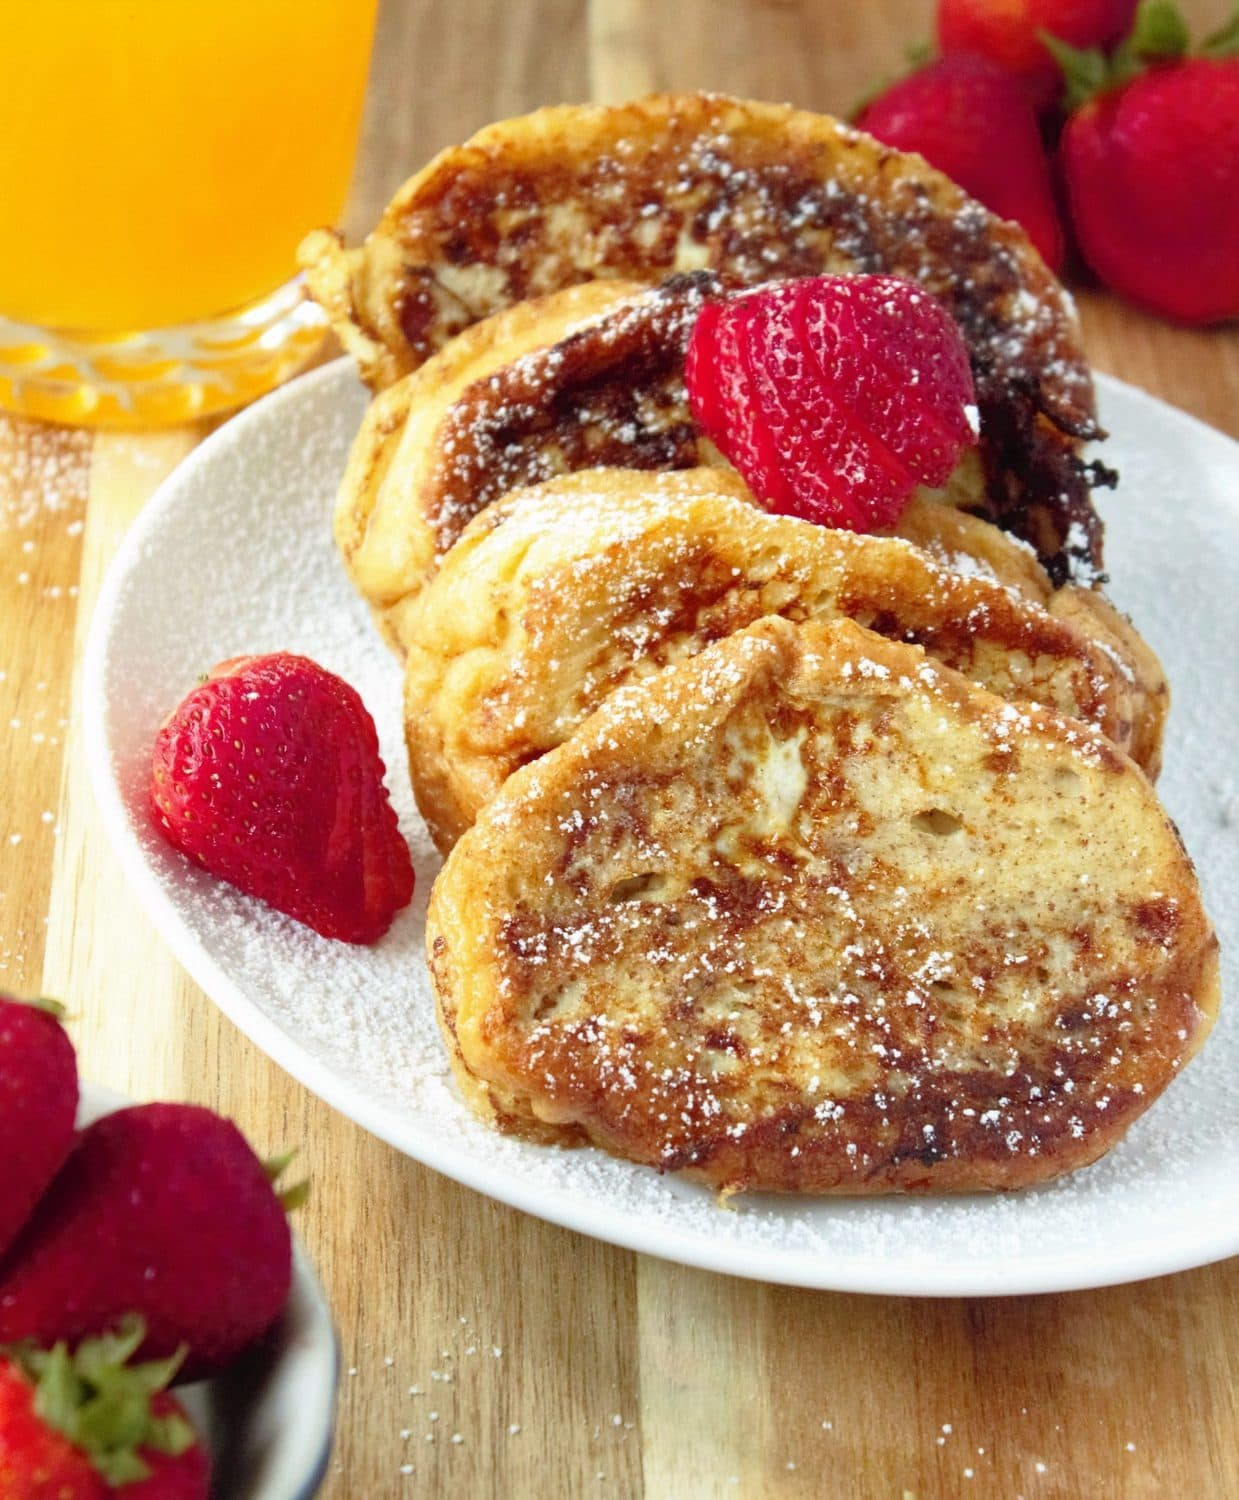 From start to finish, you'll have a delicious, filling, plate full of French Toast with a decadent vanilla custard.